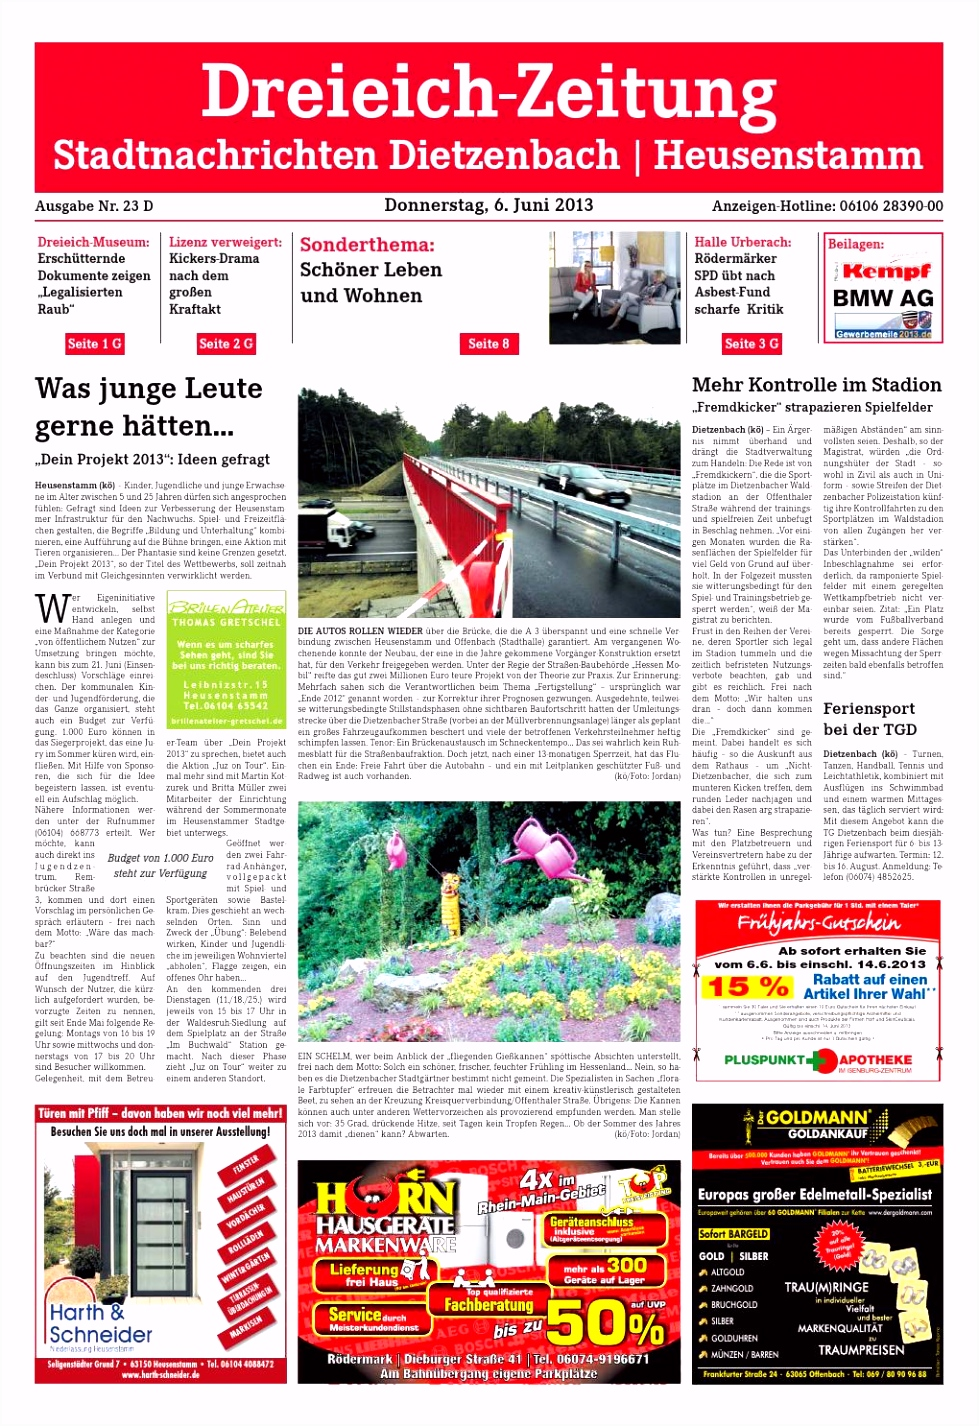 Dz online 023 13 d by Dreieich Zeitung fenbach Journal issuu